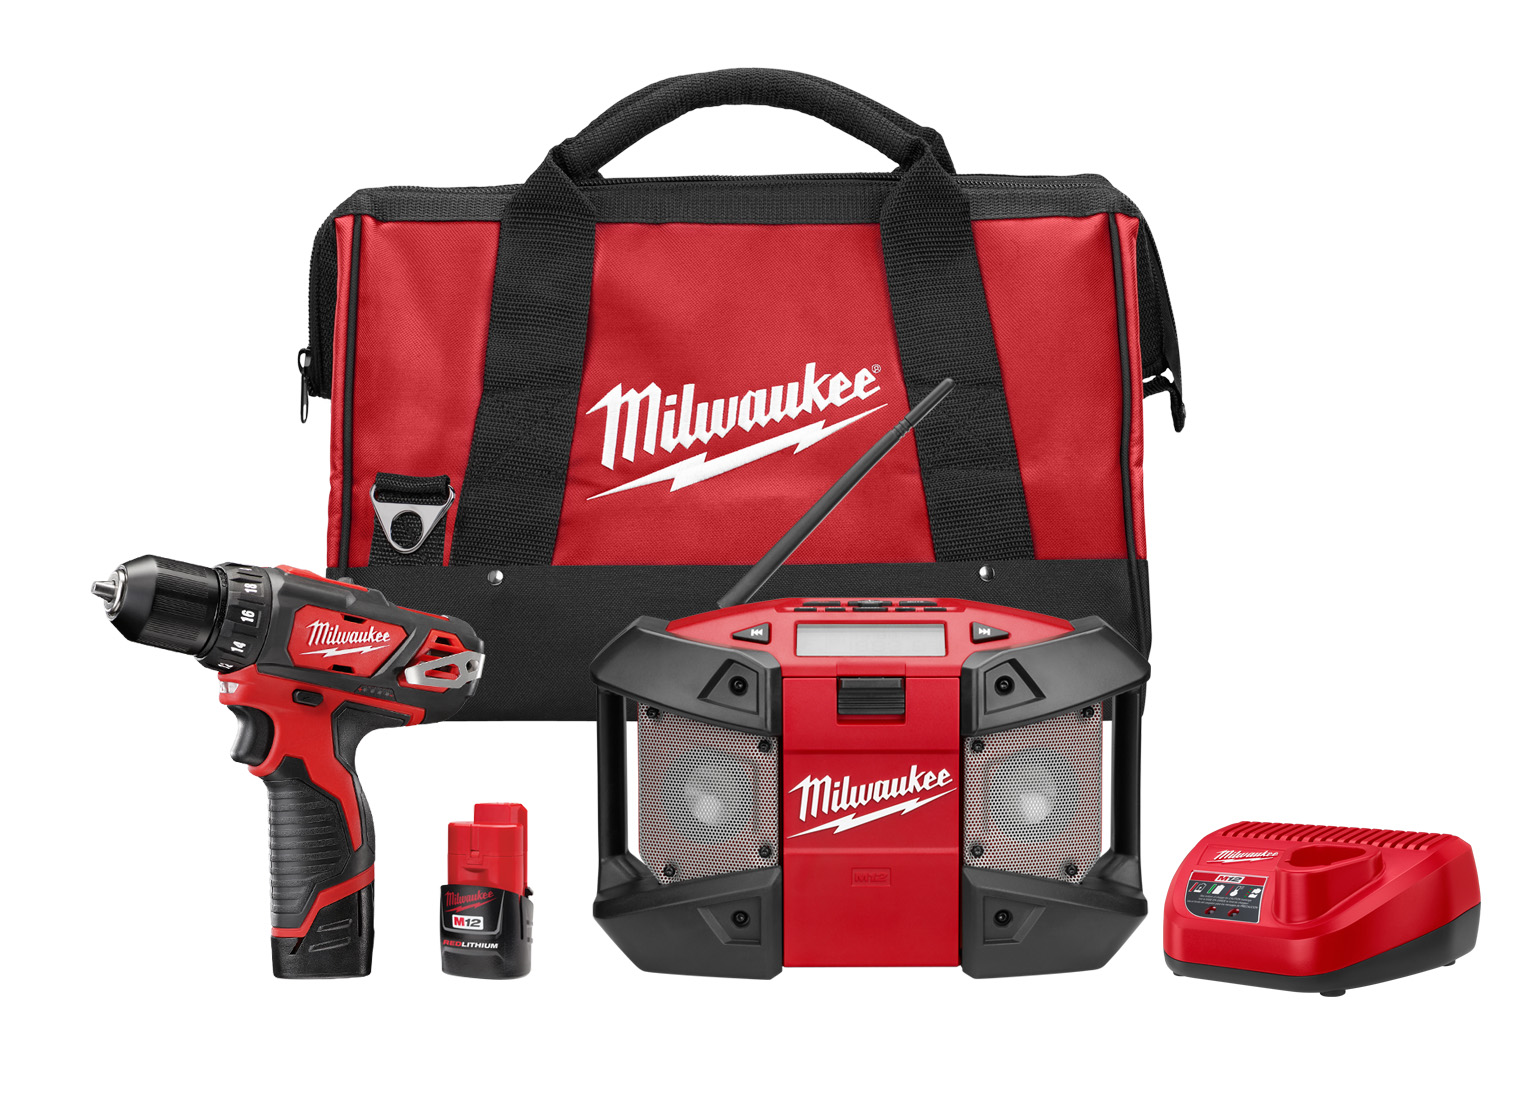 Milwaukee® M12™ 2492-22 2-Tool Cordless Combination Kit, Tools: Drill/Driver, 12 VDC, 1.5 Ah Lithium-Ion REDLITHIUM™ Battery, 3.8 in Drill